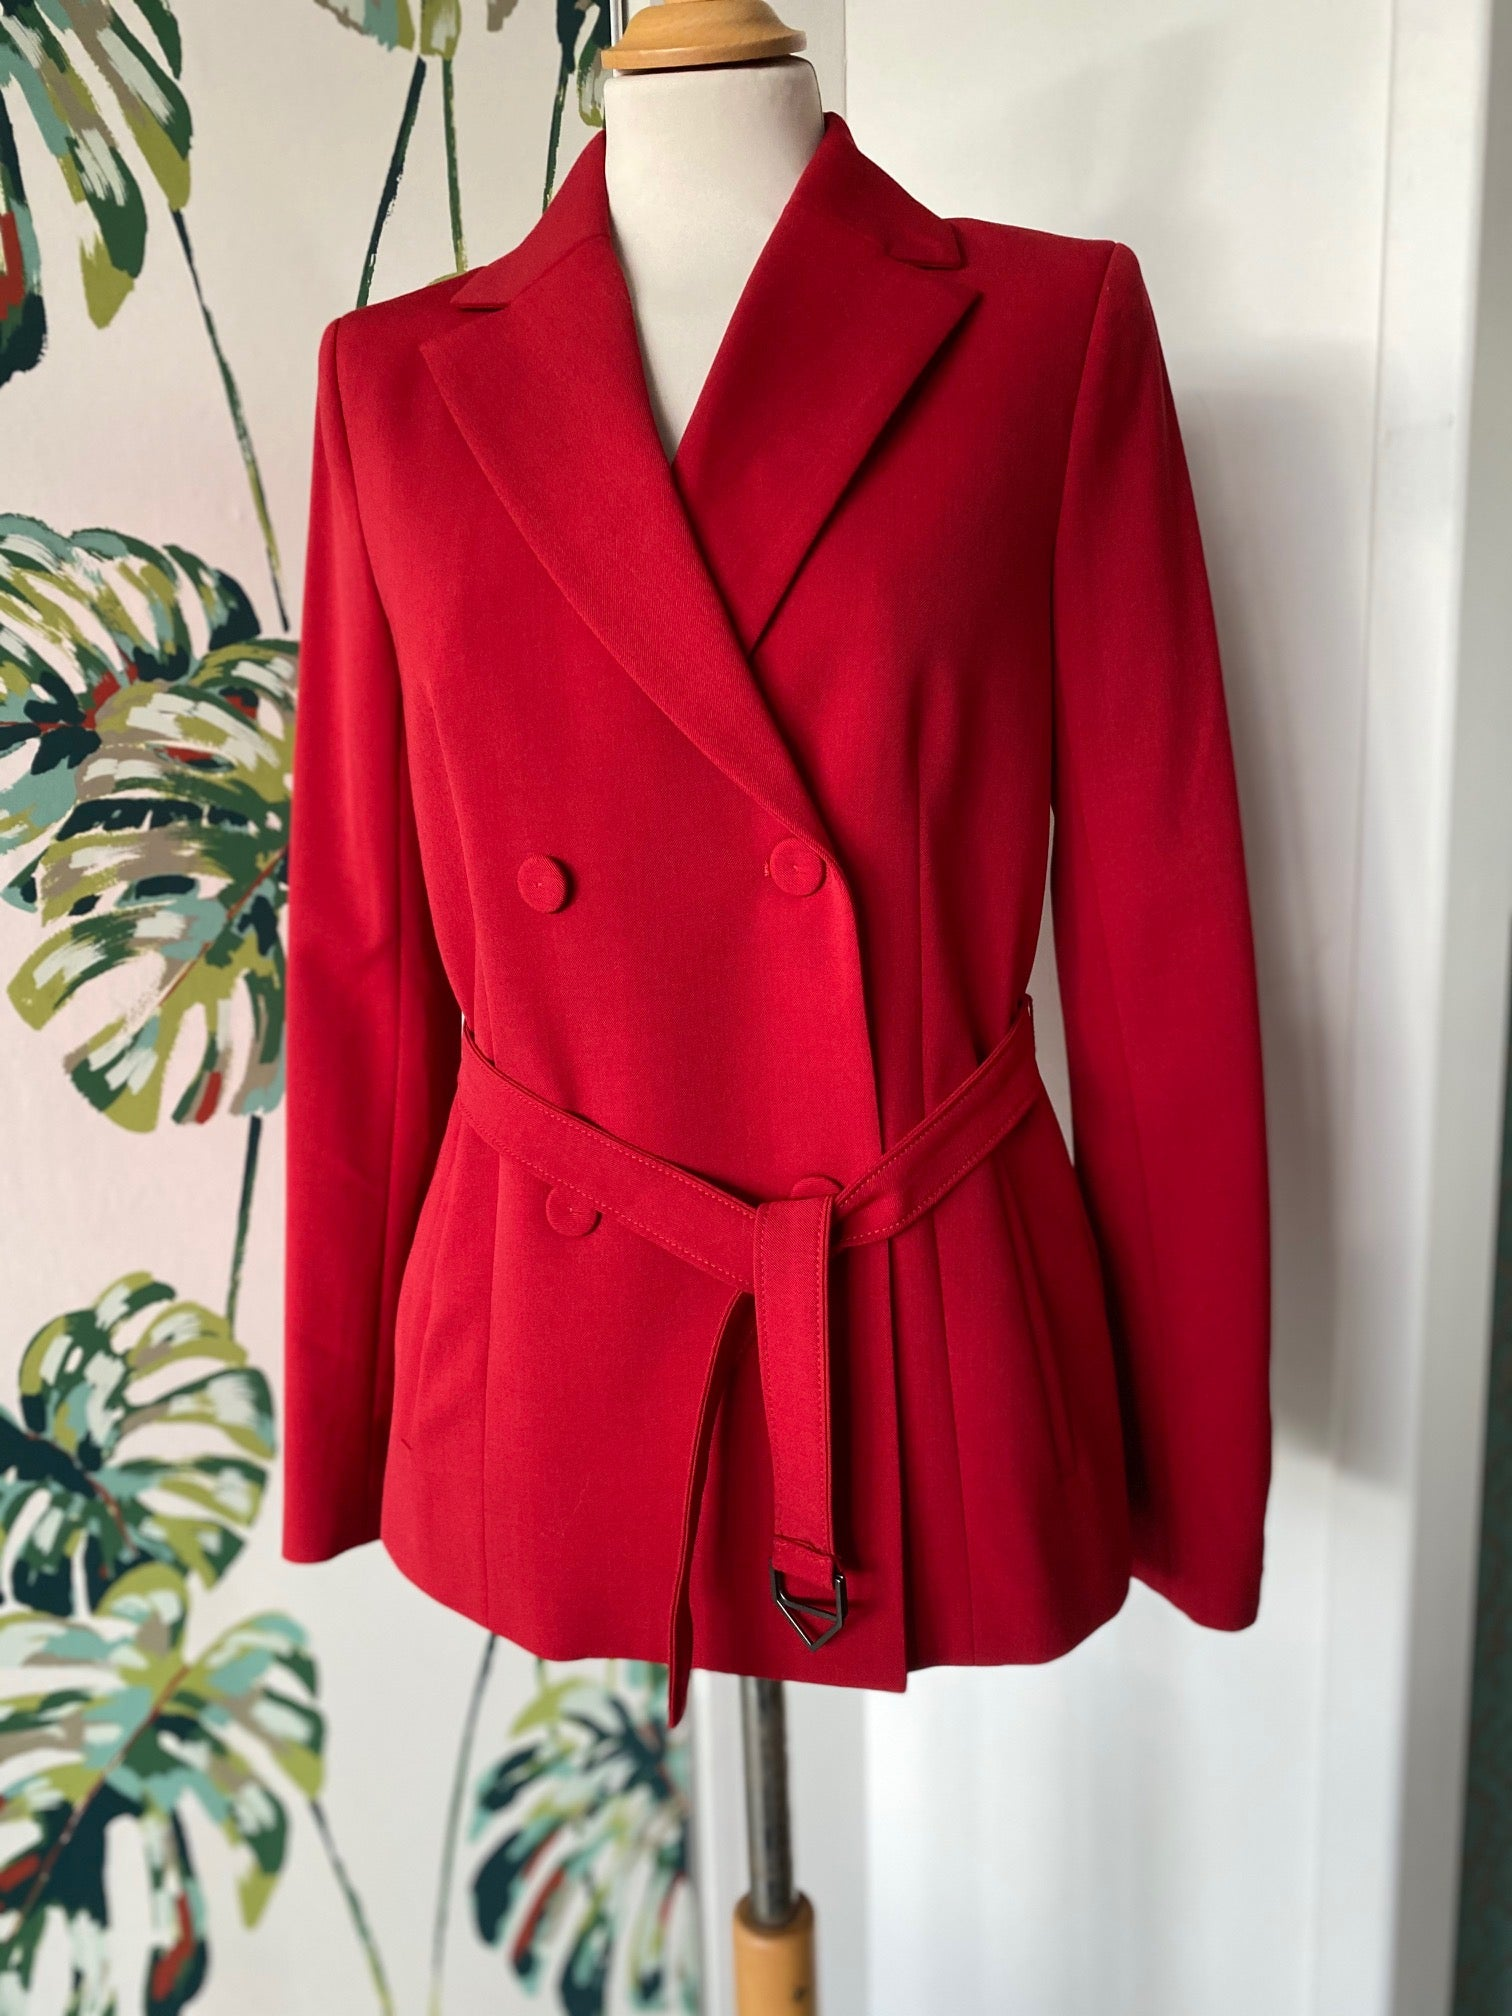 Beatrice B Double Breasted Red Jacket HALF PRICE